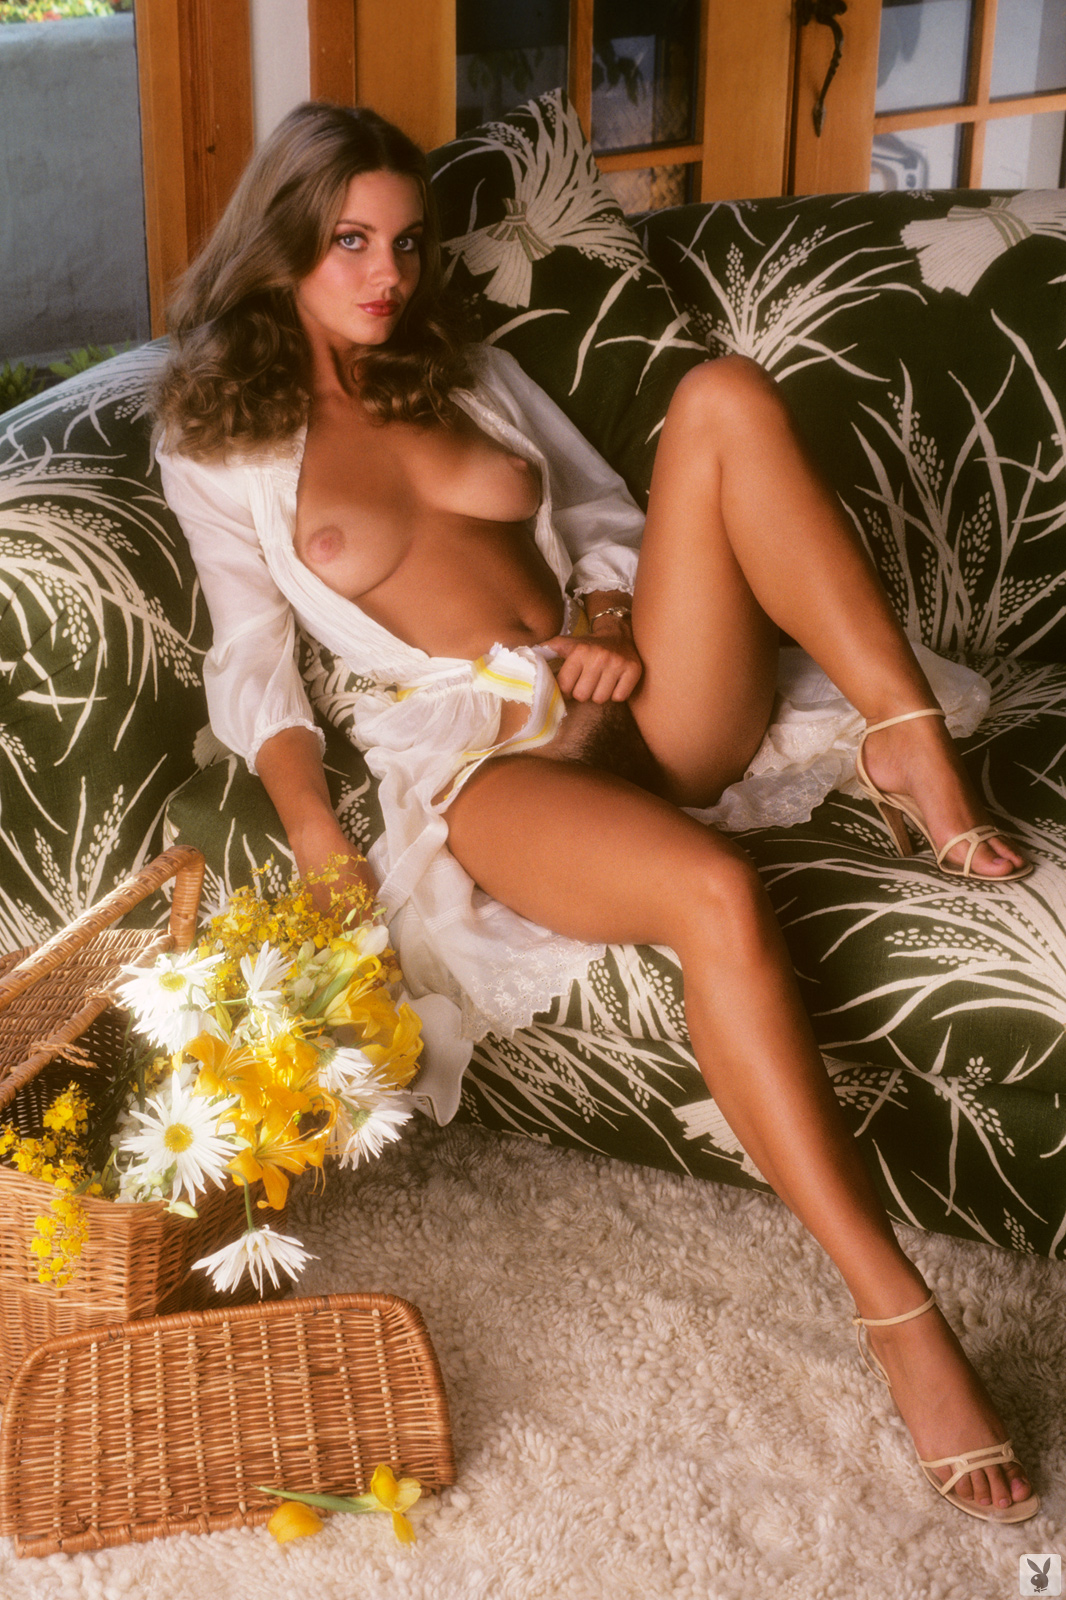 Mohammad recommend best of erotica vintage 1980